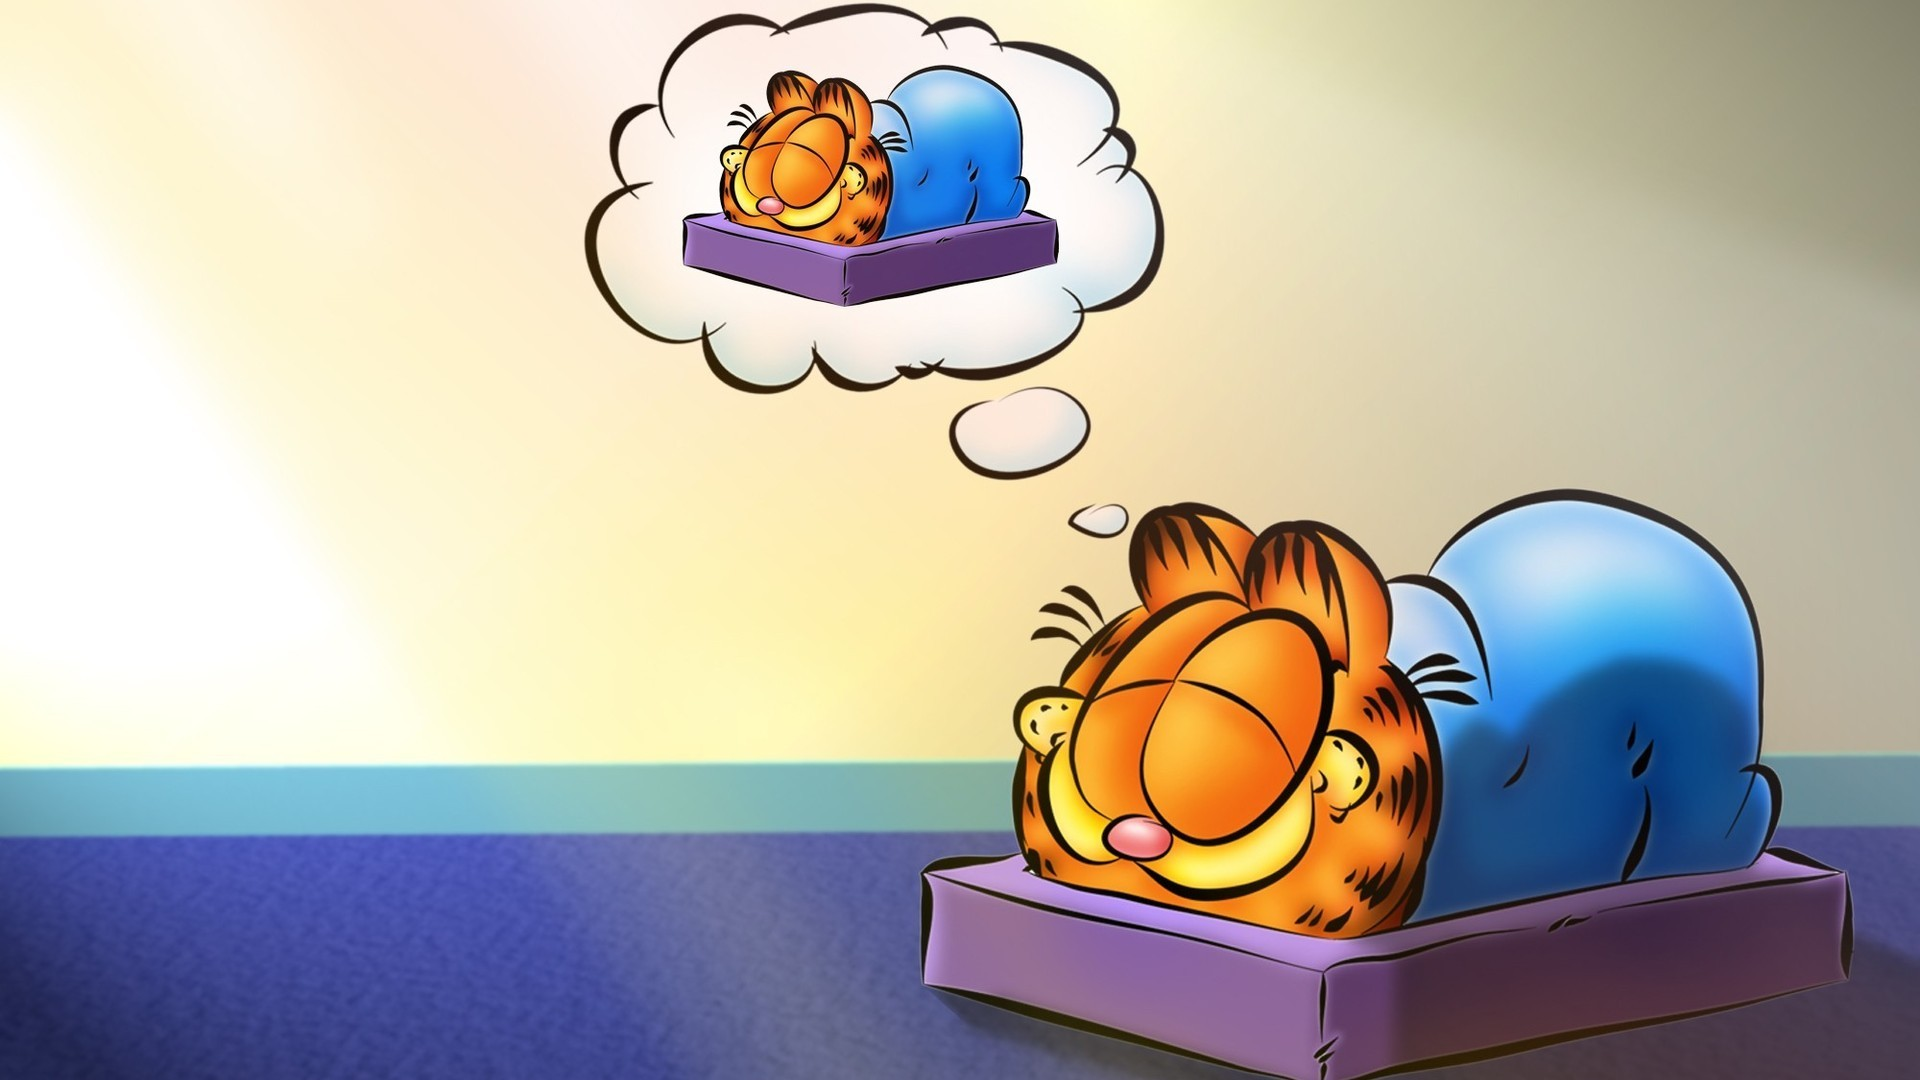 5 garfield hd wallpapers backgrounds wallpaper abyss - Garfield wallpapers for mobile ...